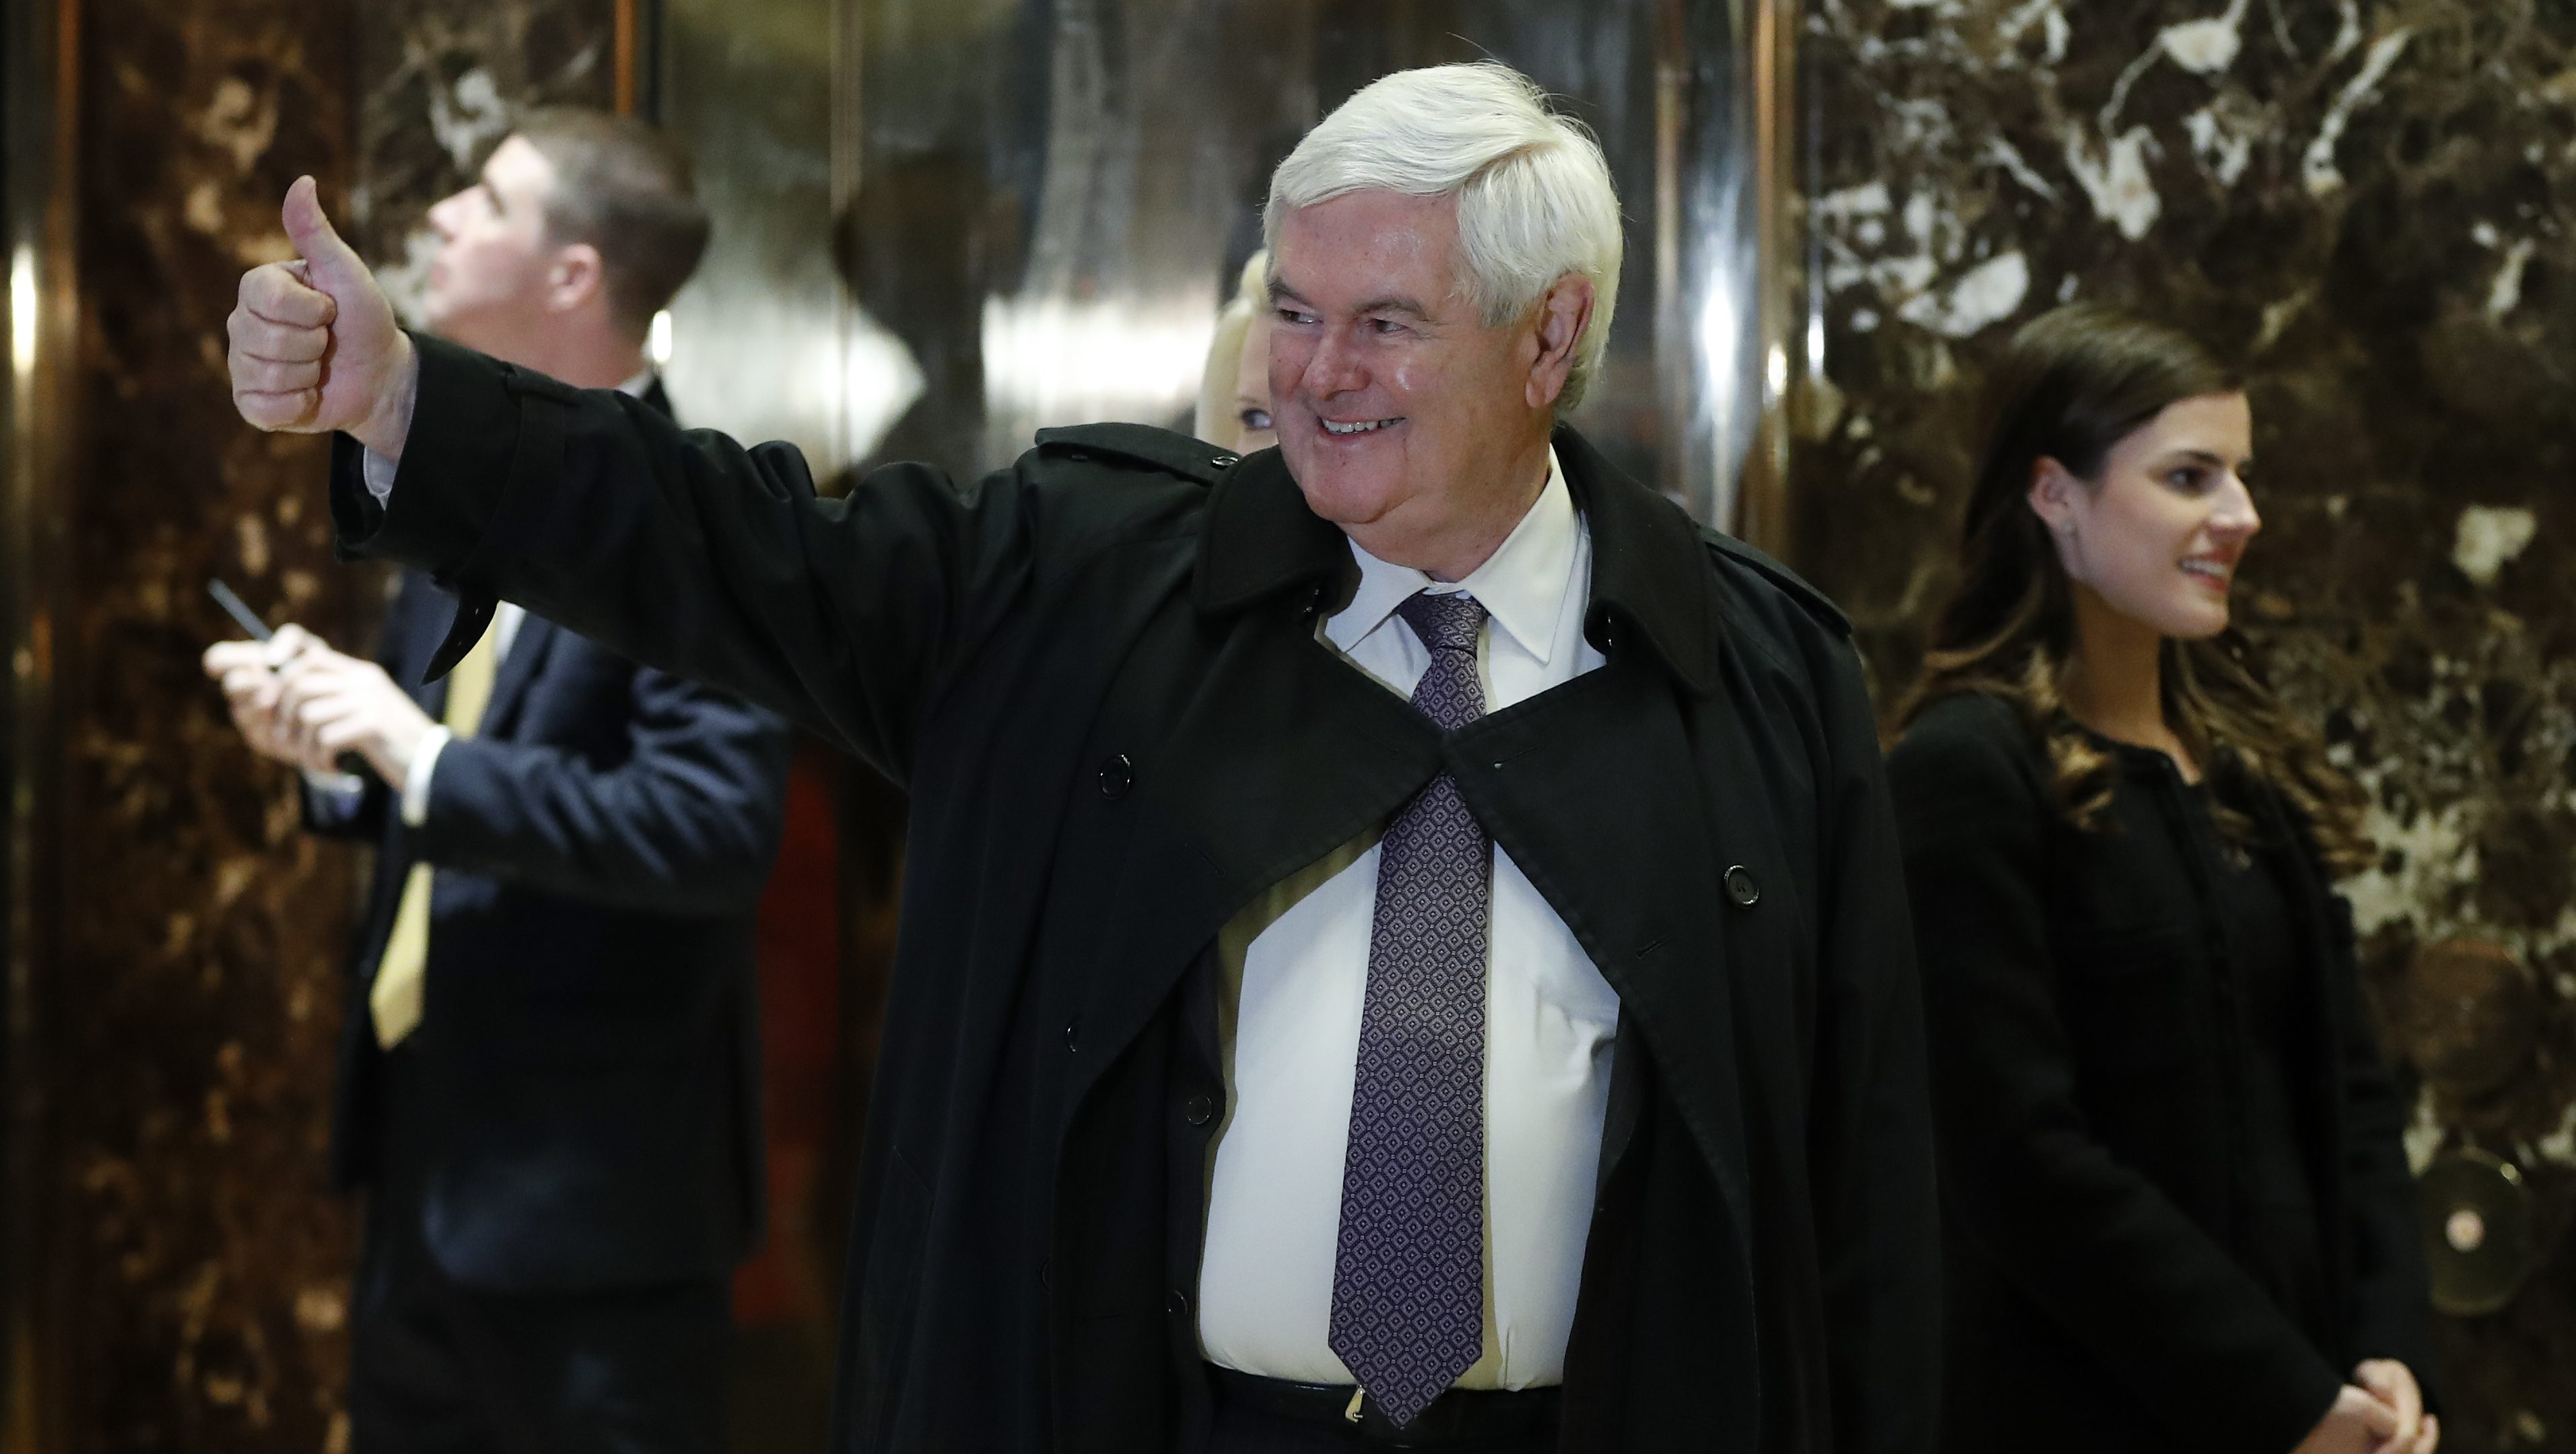 Newt Gingrich celebrated Pearl Harbor by praising the Japanese